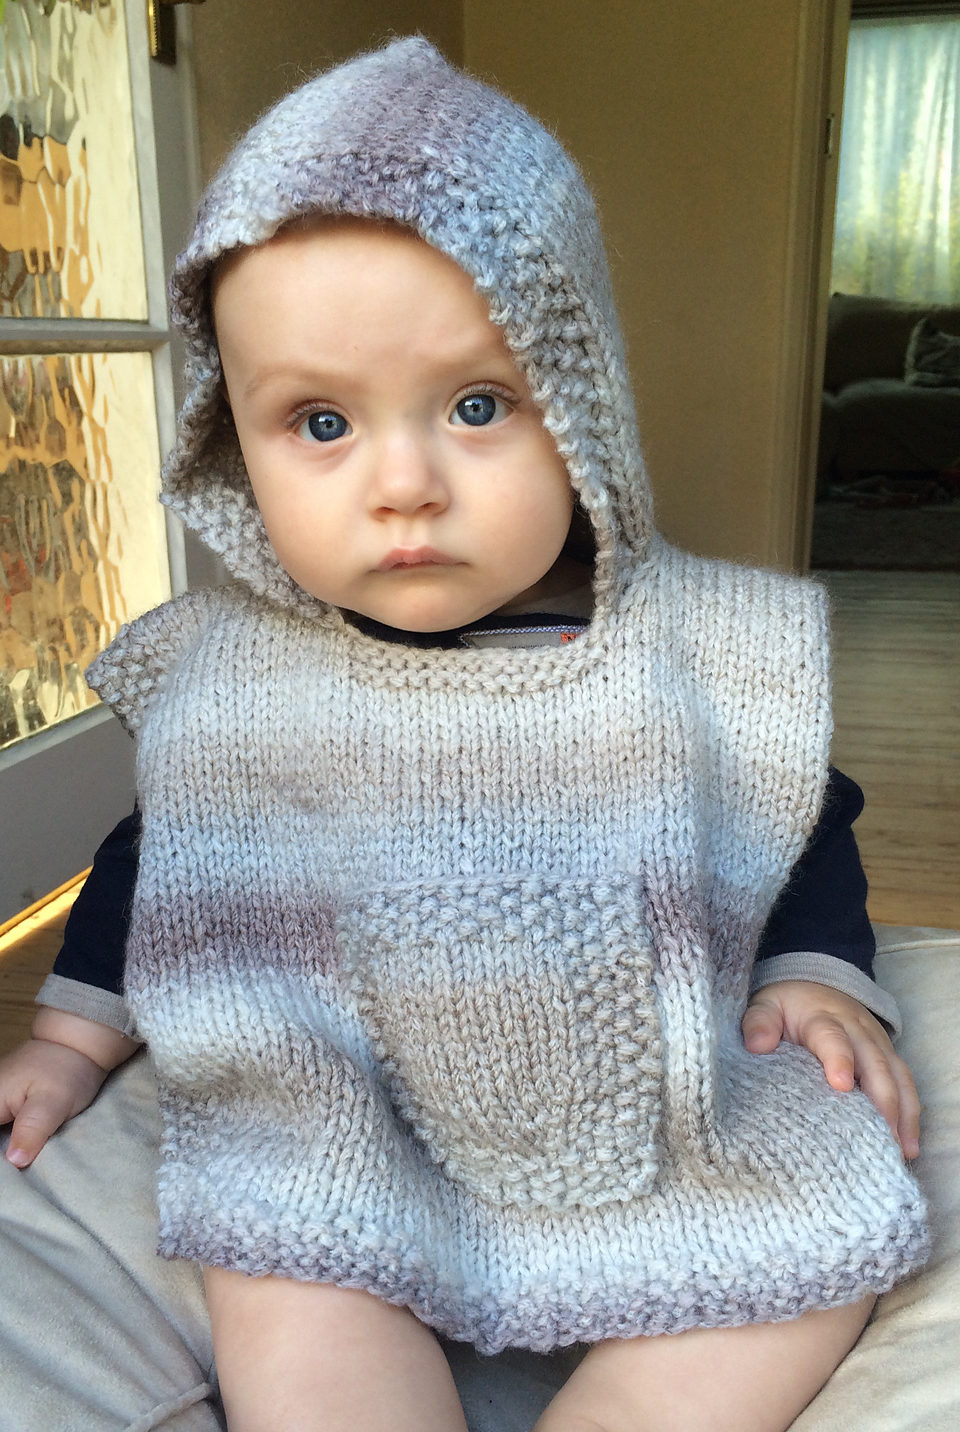 Knitting Patterns For Childrens Sweaters Free Ponchos For Babies And Children In The Loop Knitting